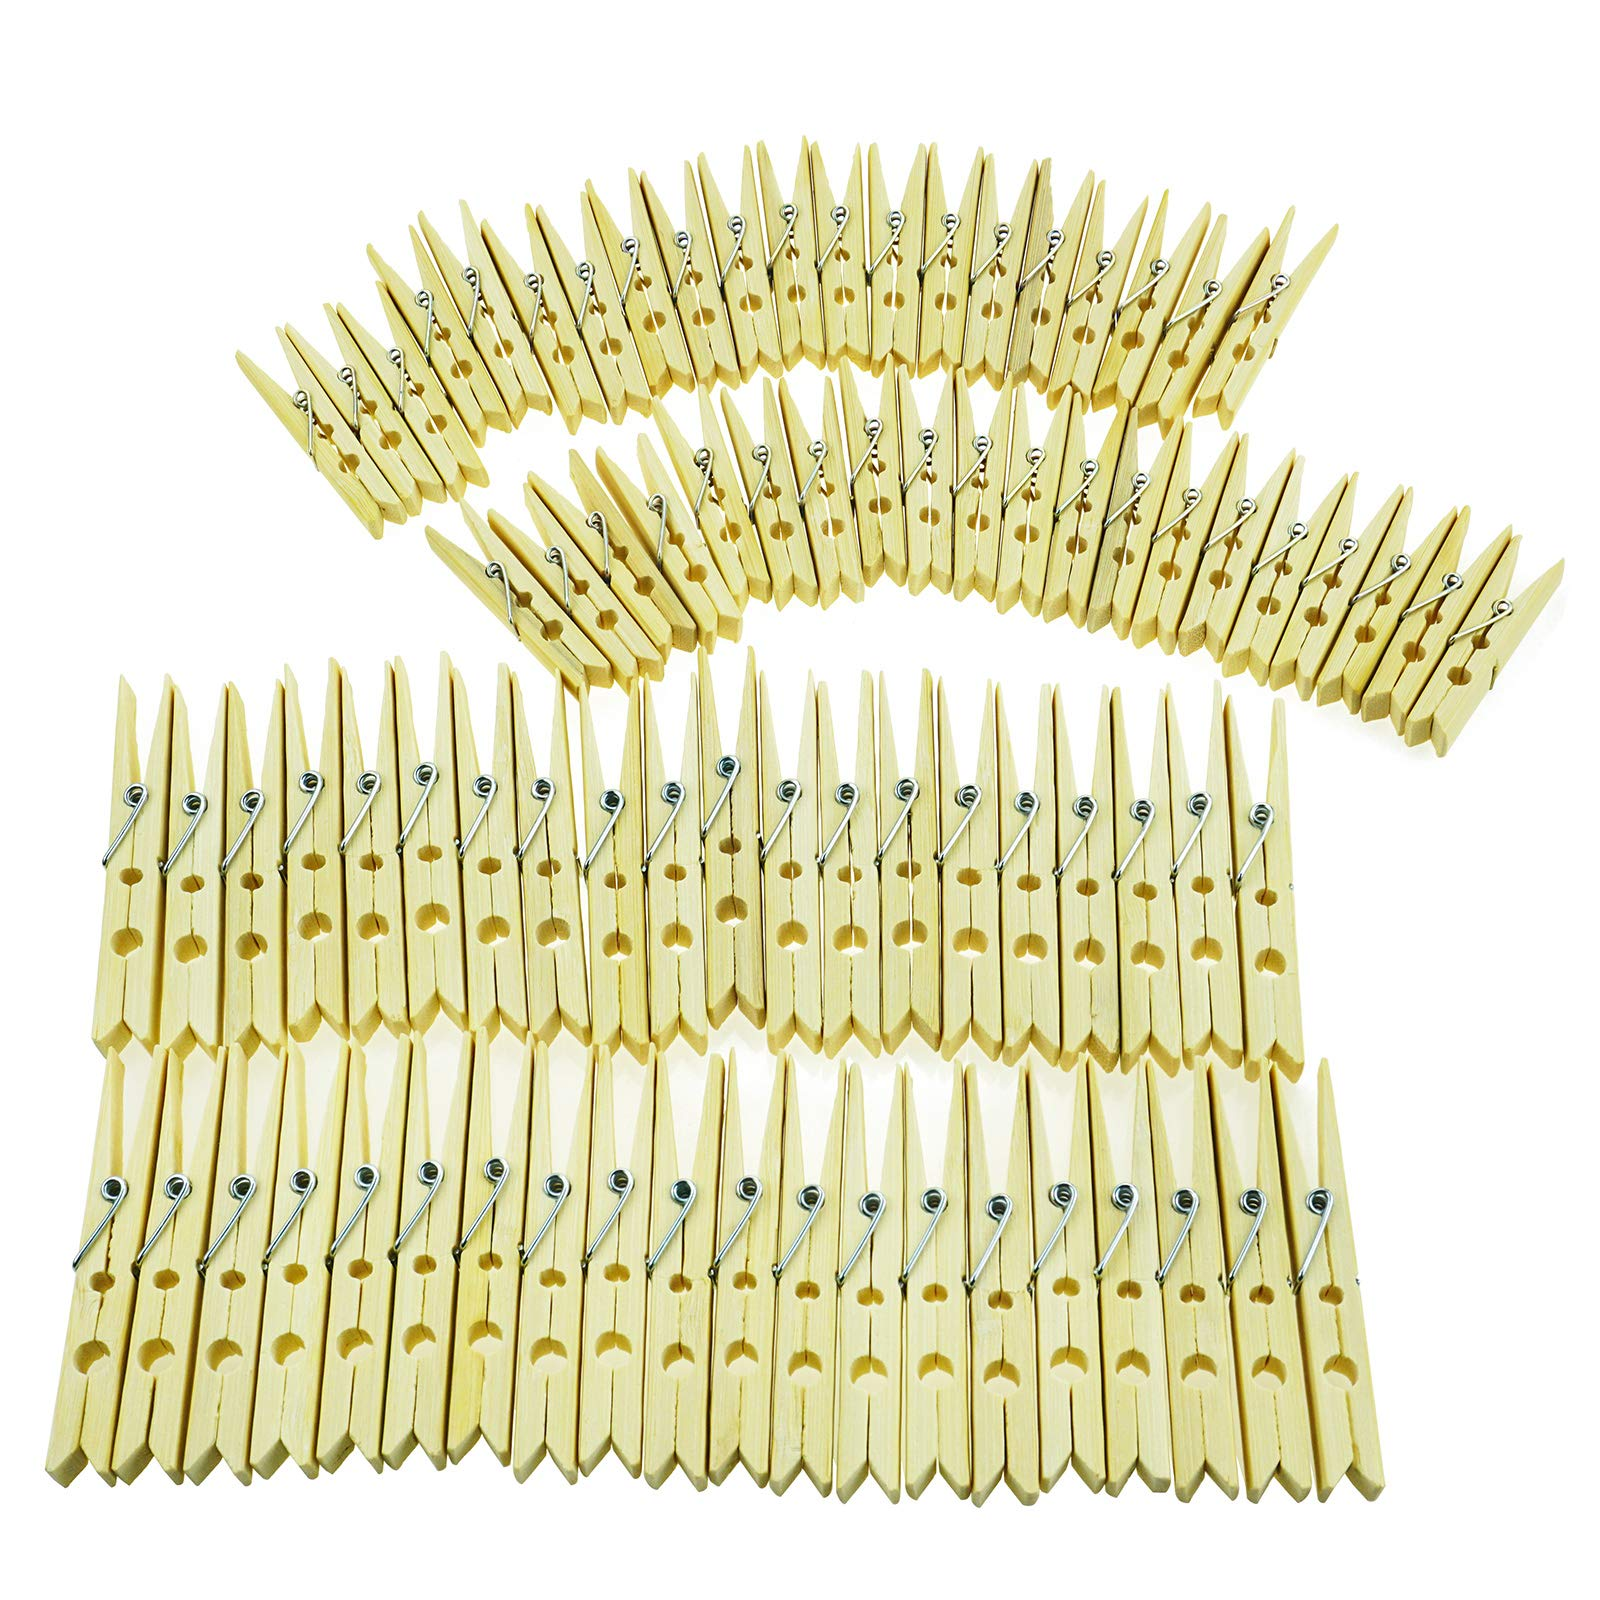 neeyeetag Natural Bamboo Heavy Duty Clothes Pins/Pegs/Clips, Large Size 3.74'' 40 Pack and Medium Size 2.36'' 40 Pack